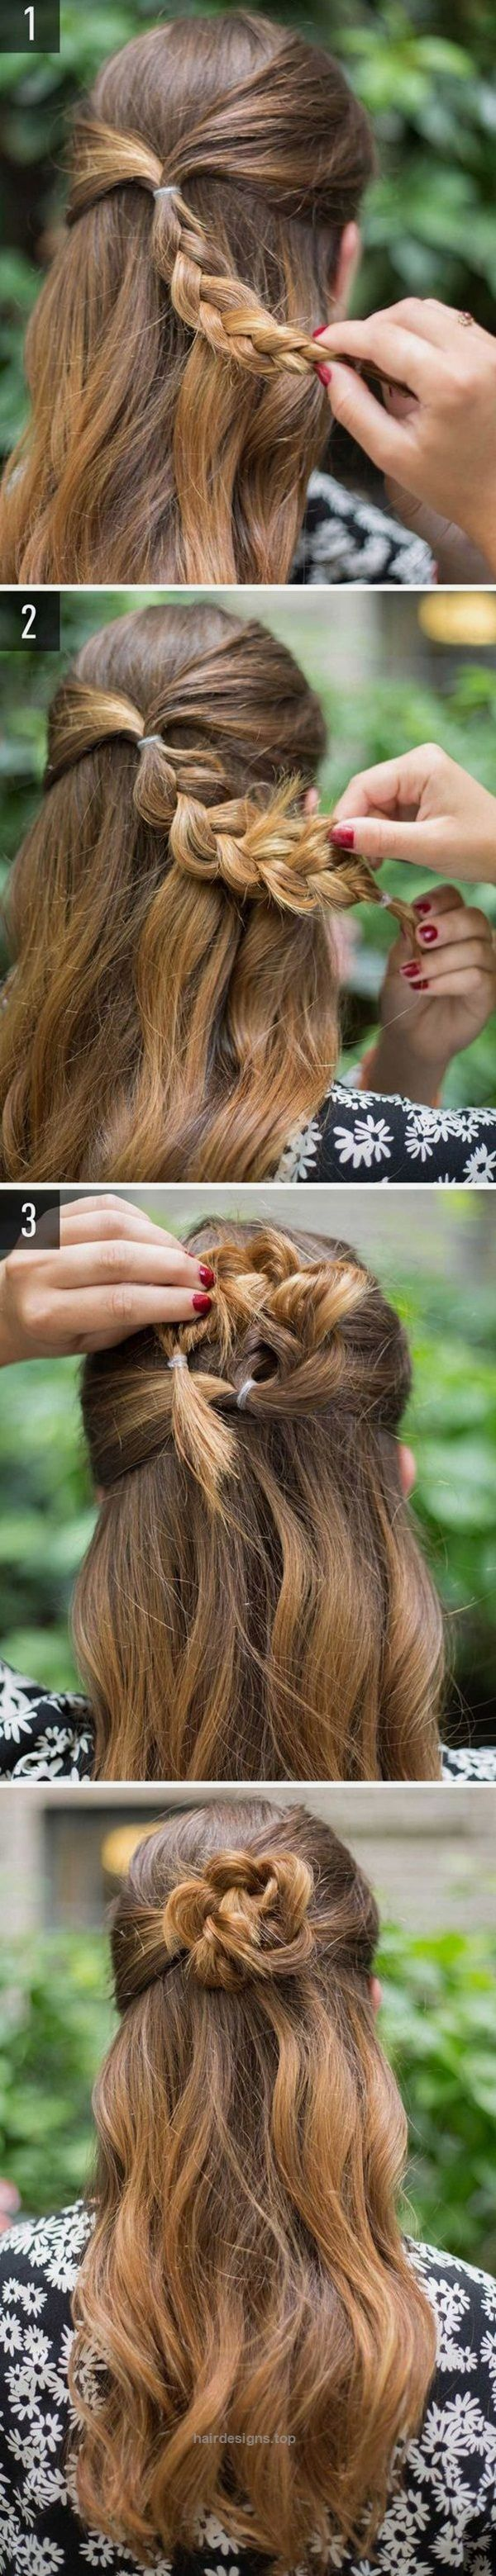 40 Easy Hairstyles for Schools to Try in 2017. Quick, Easy, Cute  and Simple Ste… | Hair Designs